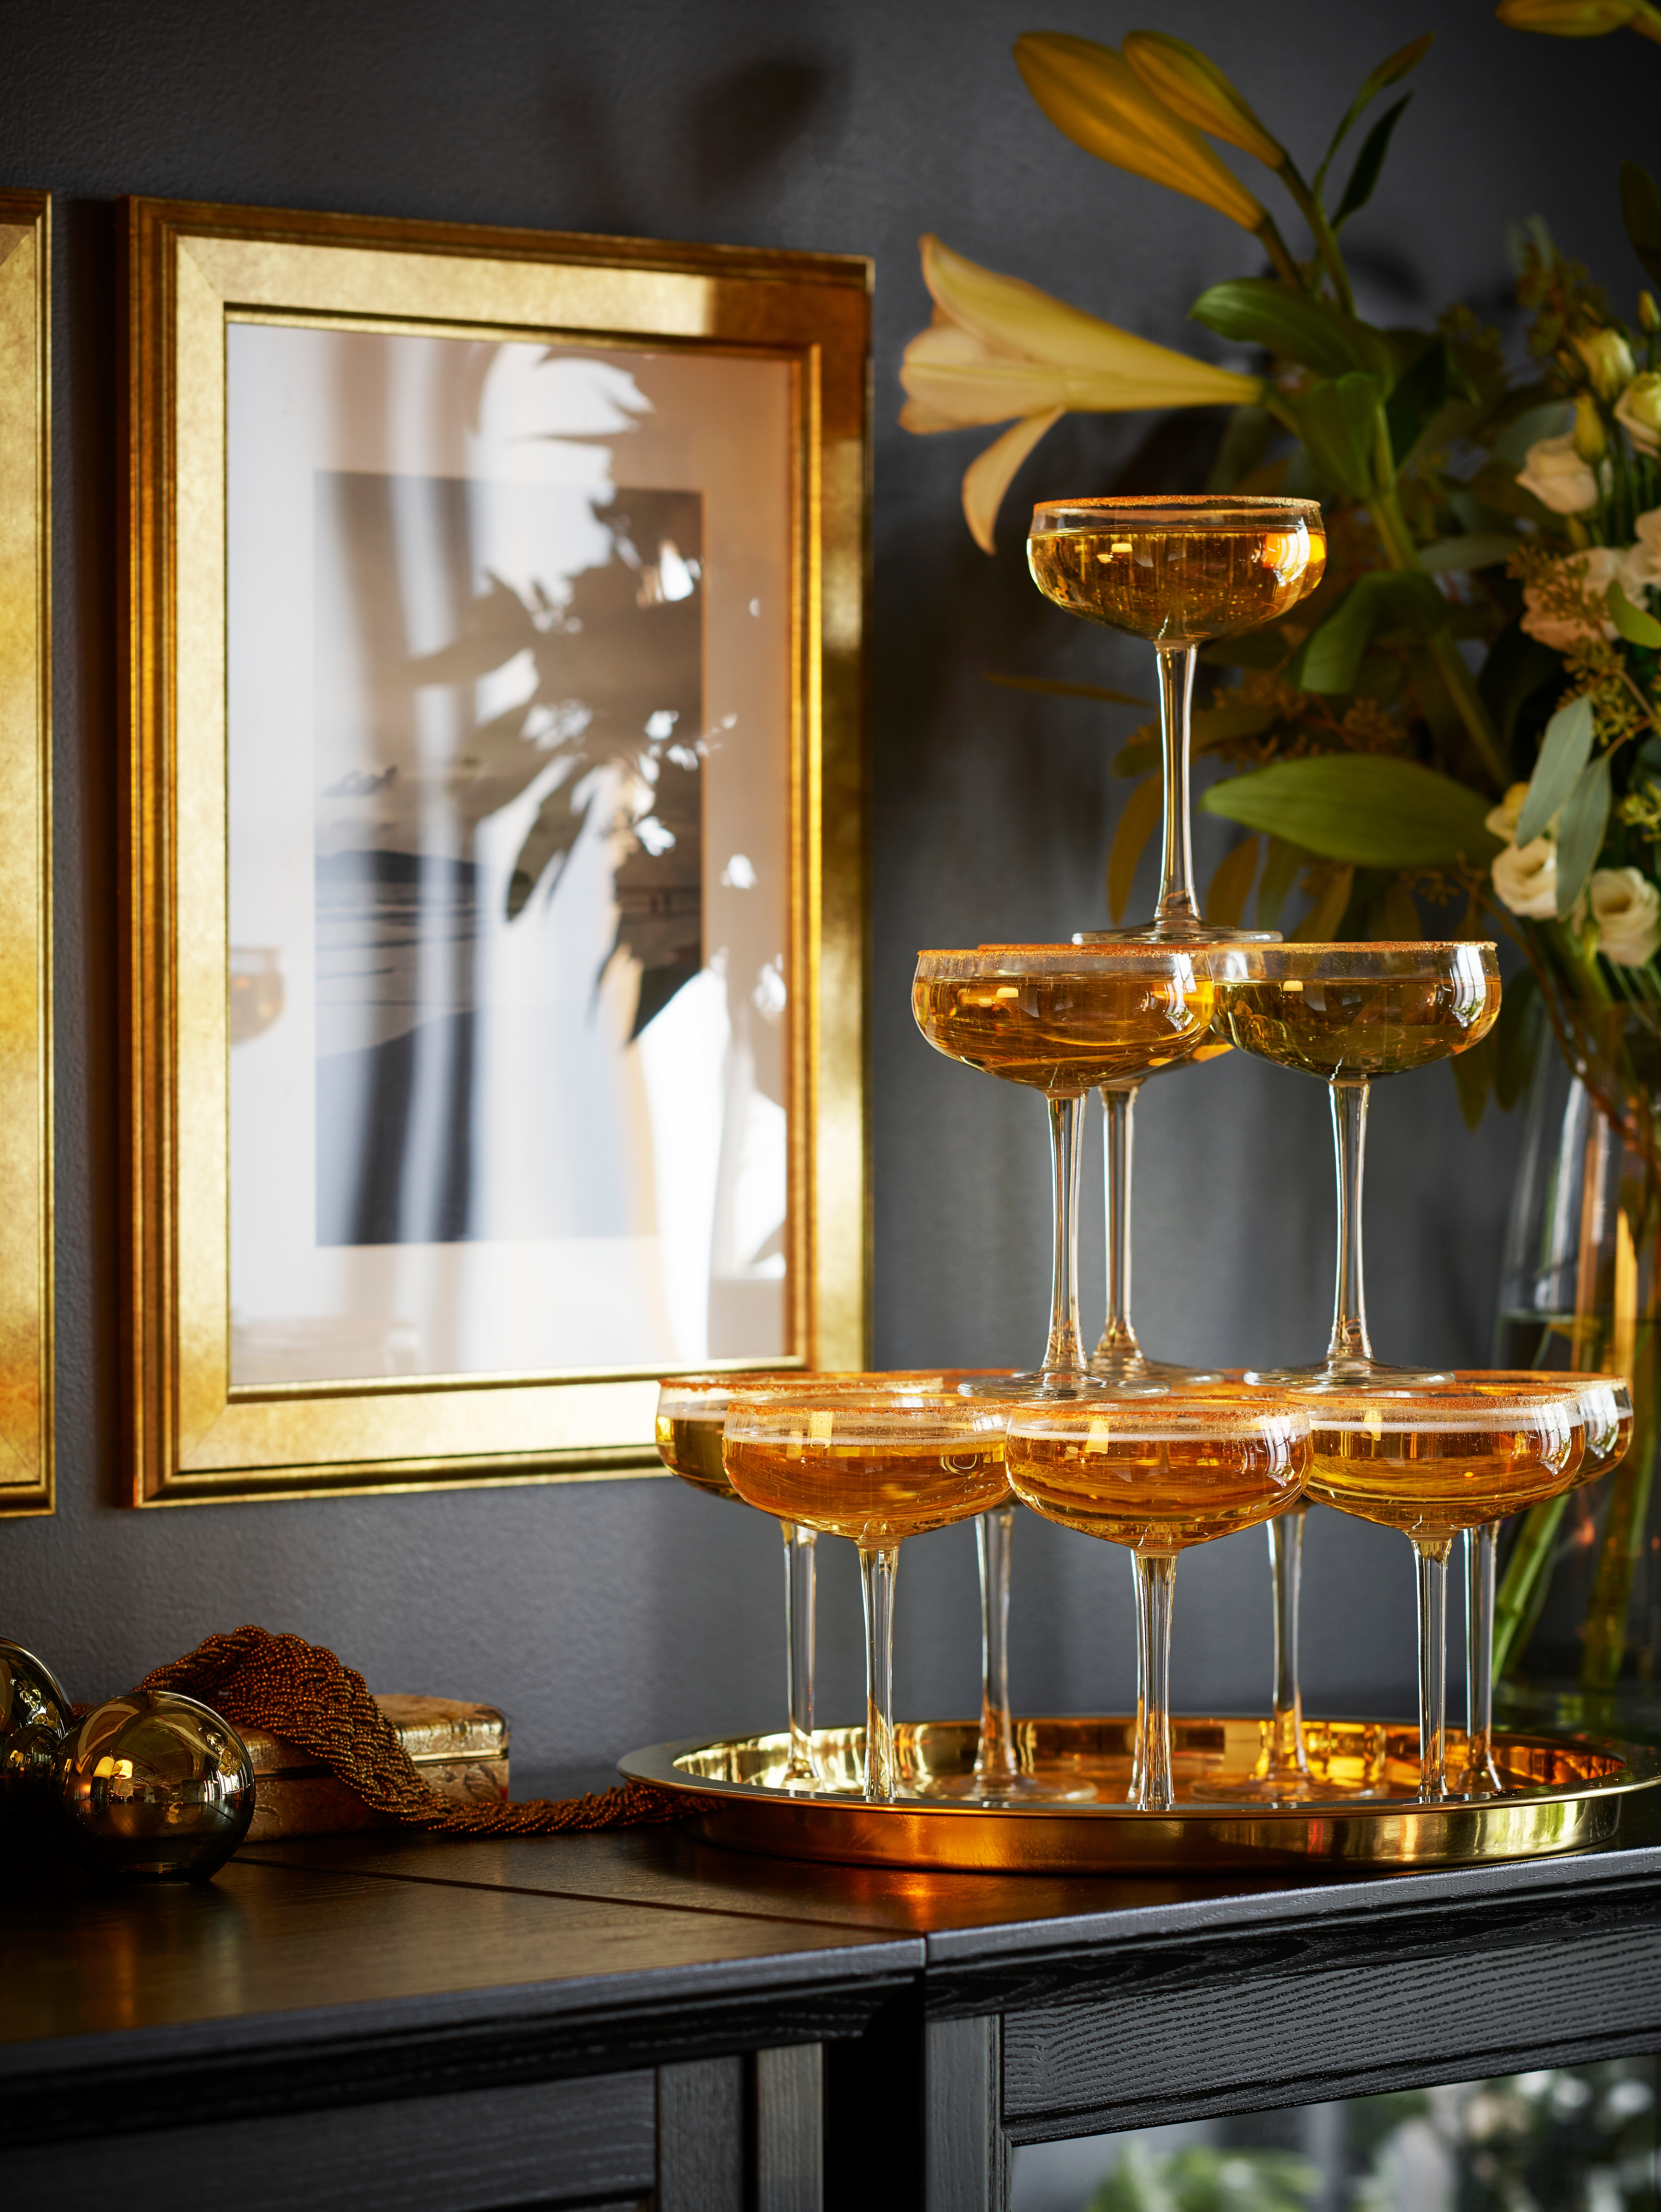 A festive towering pyramid of clear glass STORHET champagne coupes with gold liquid stand on brassy tray on top of a cabinet.